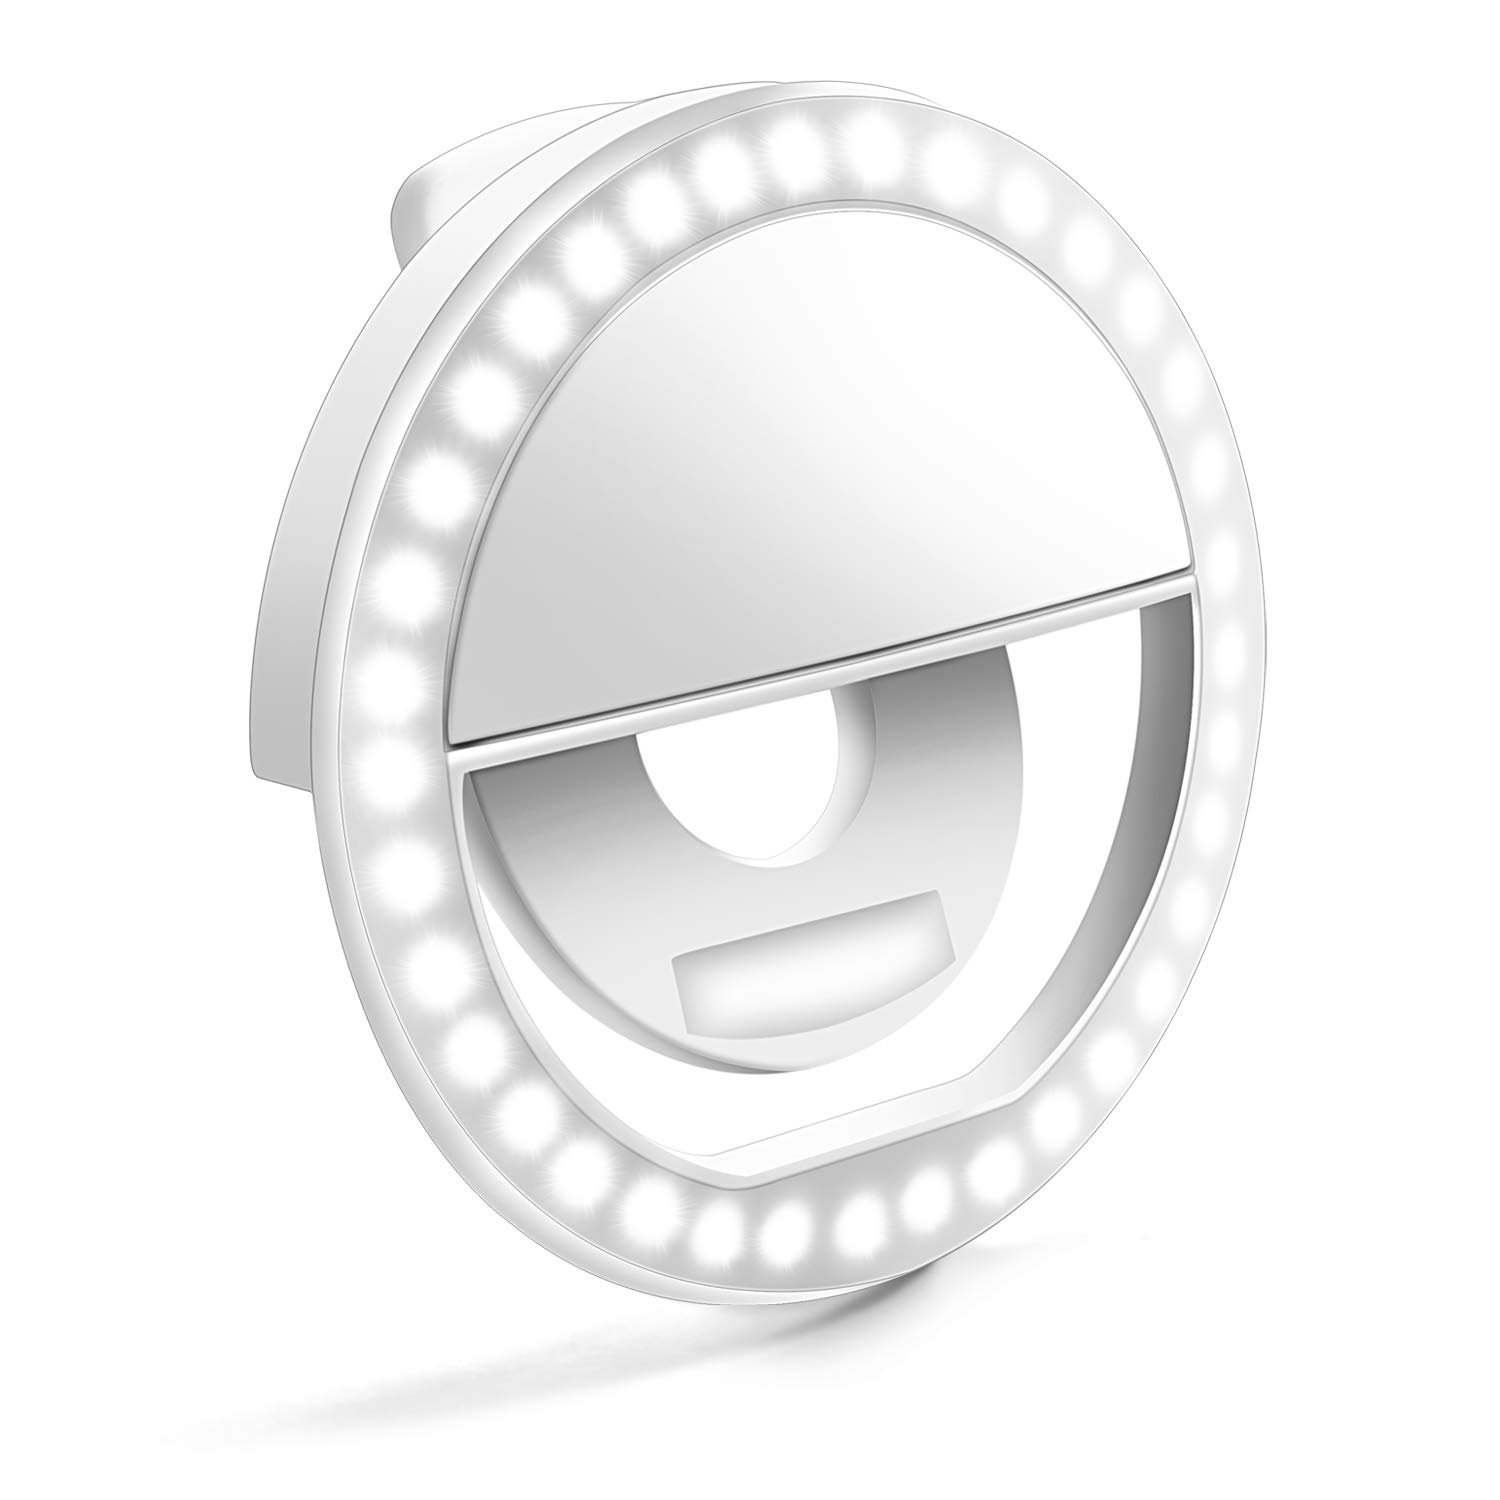 Selfie Ring Light, Enlody Dimmable Clip Ring Lighting - Rechargeable 36 LED Bulbs Light for iPhone, Android, Tablet, iPad, Laptop, Camera (White)